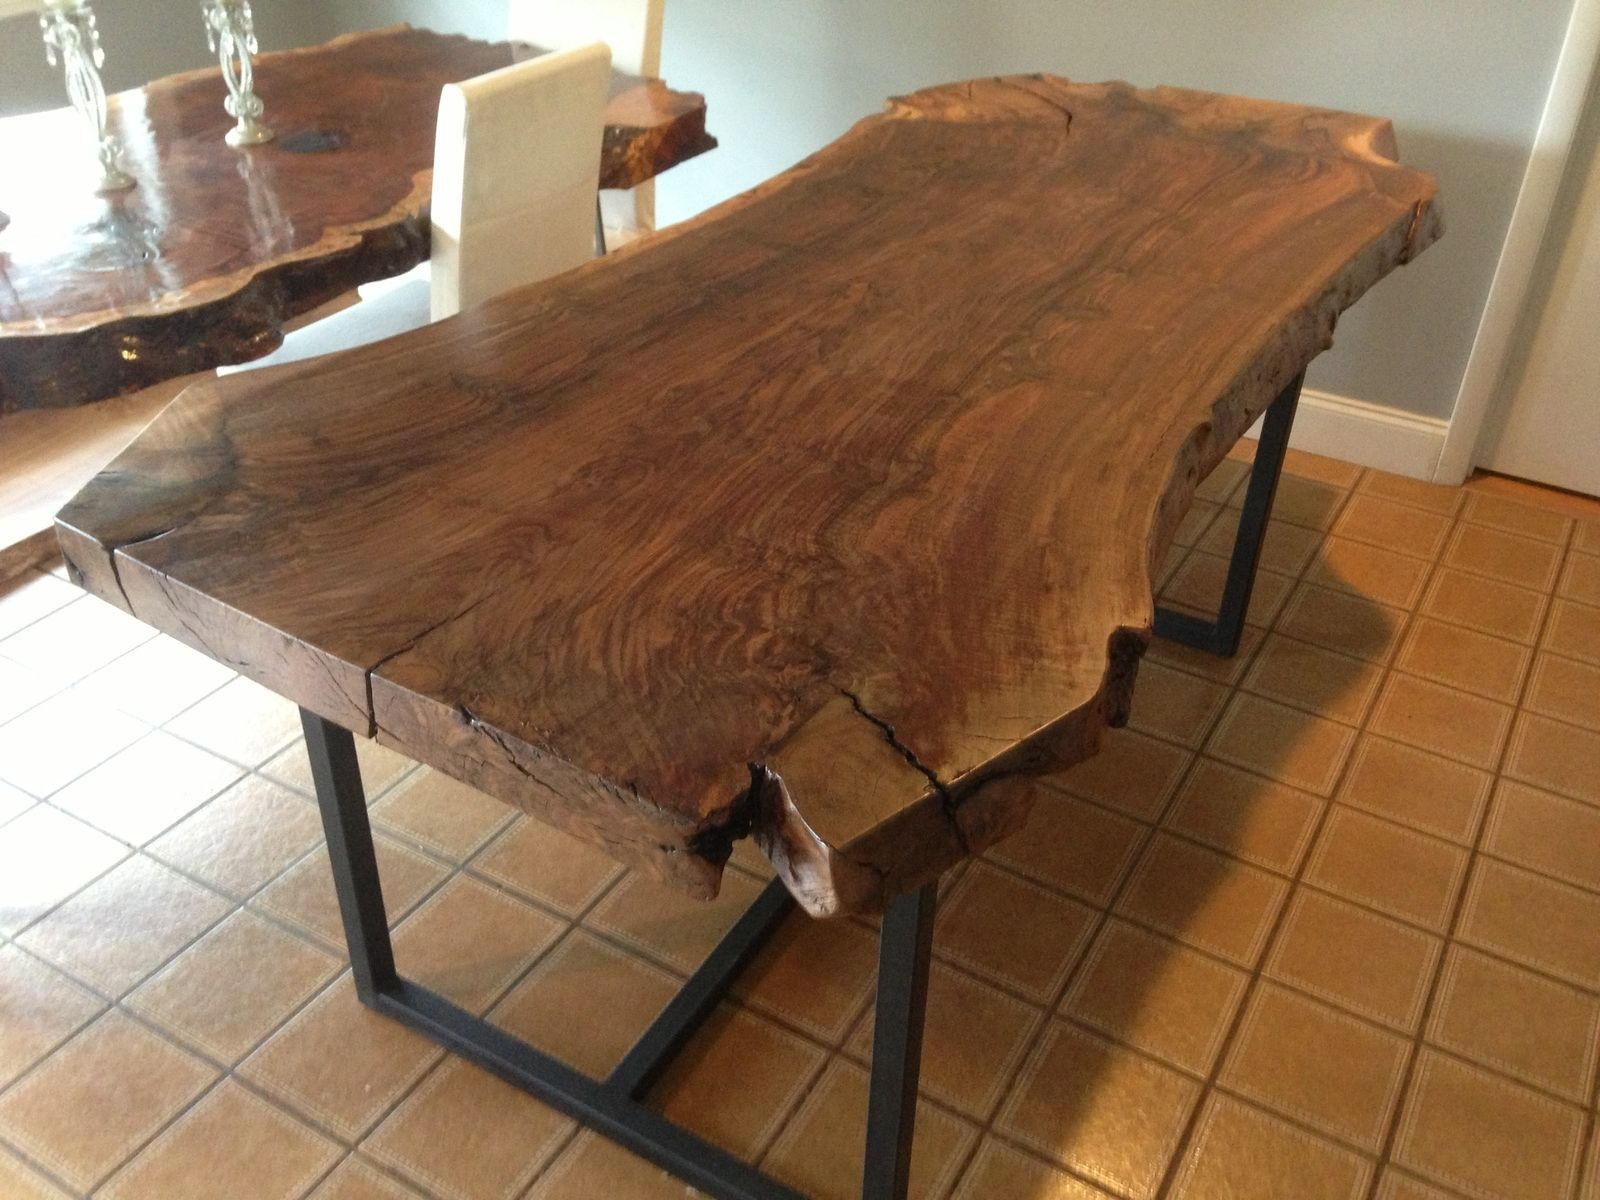 Handmade Live Edge Claro Walnut Dining Table By Ozma